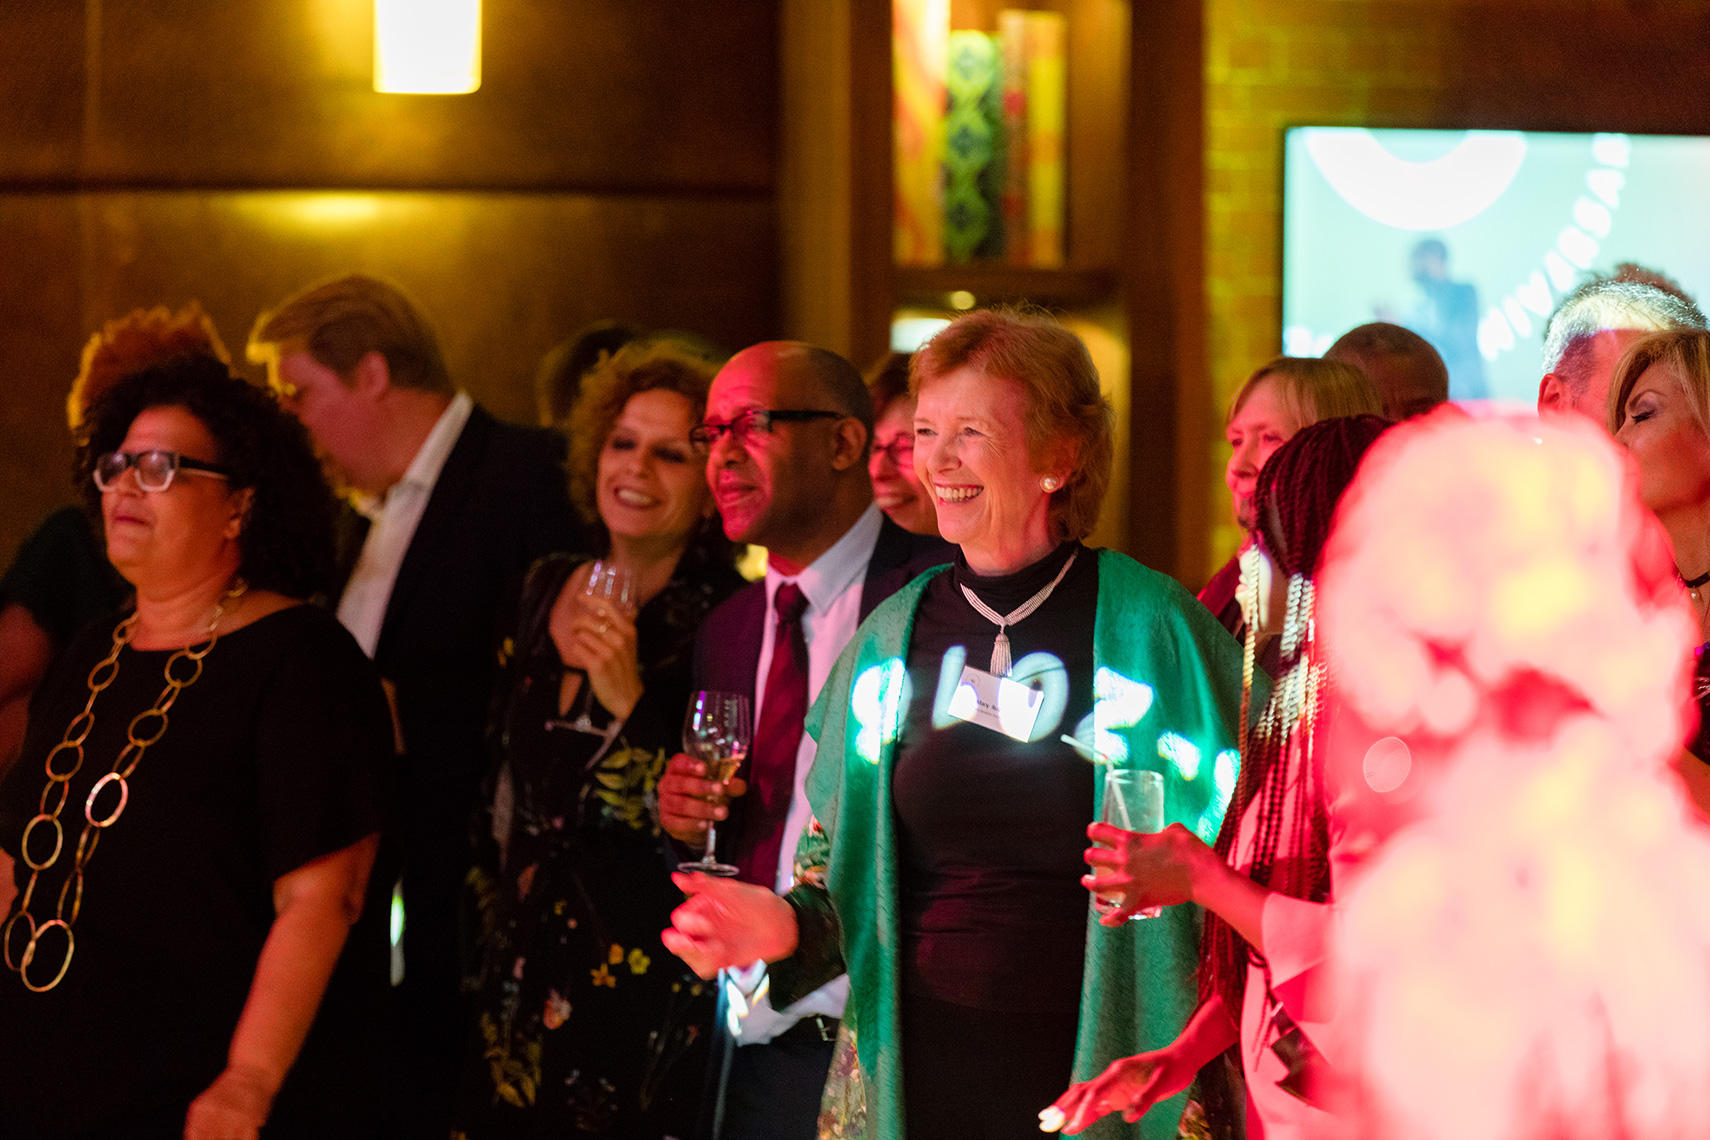 President Mary Robinson smiling and dancing at IIAG gala event in London